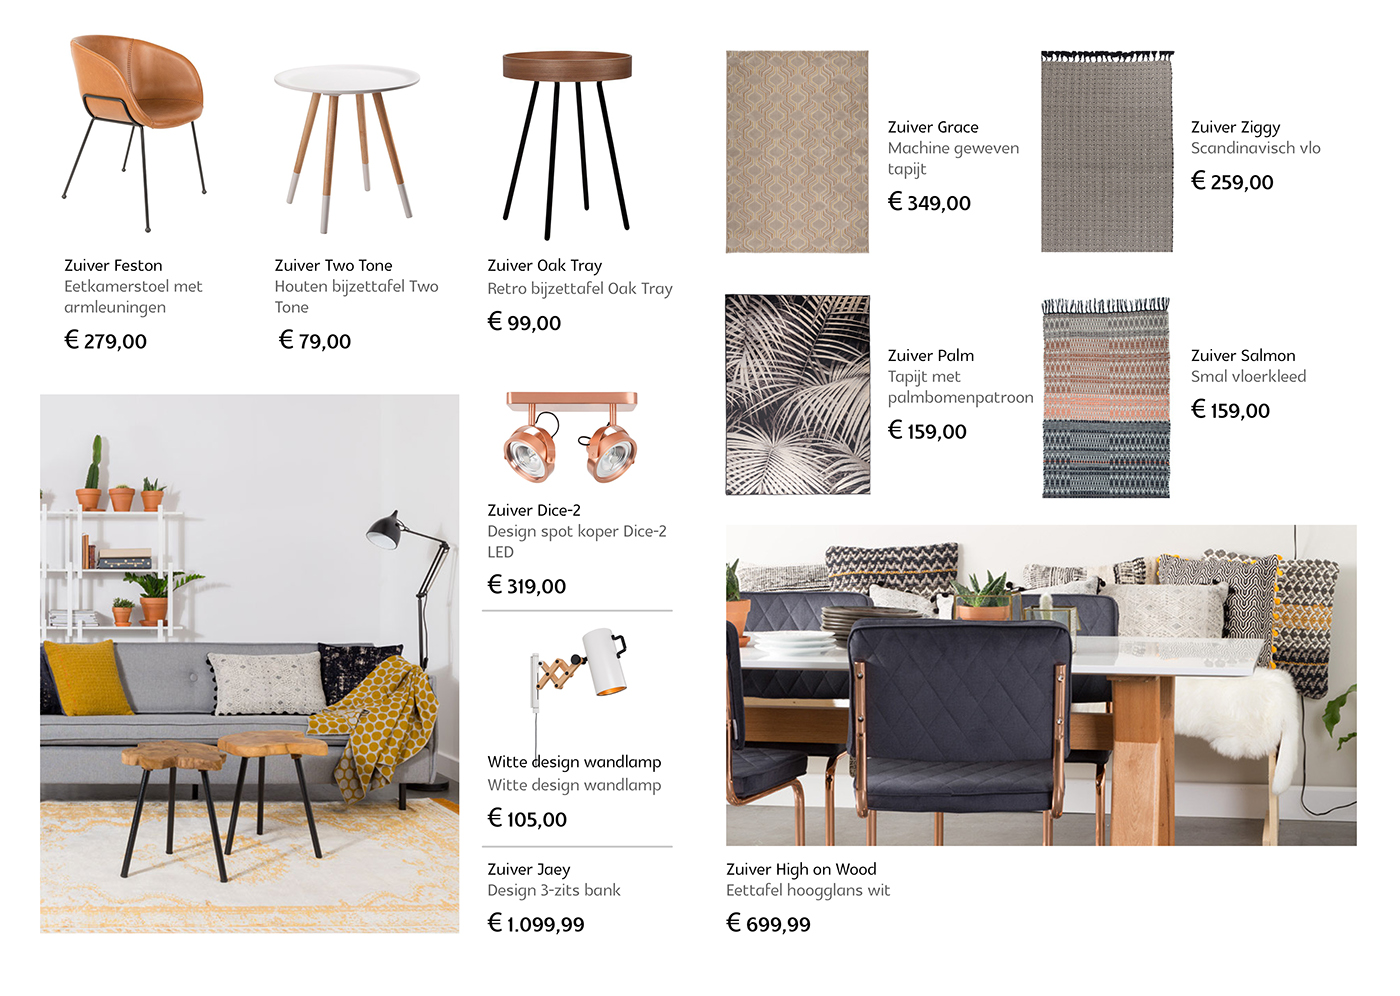 5x Designer Eetkamerstoelen : Lumz product catalogue for furniture company on behance